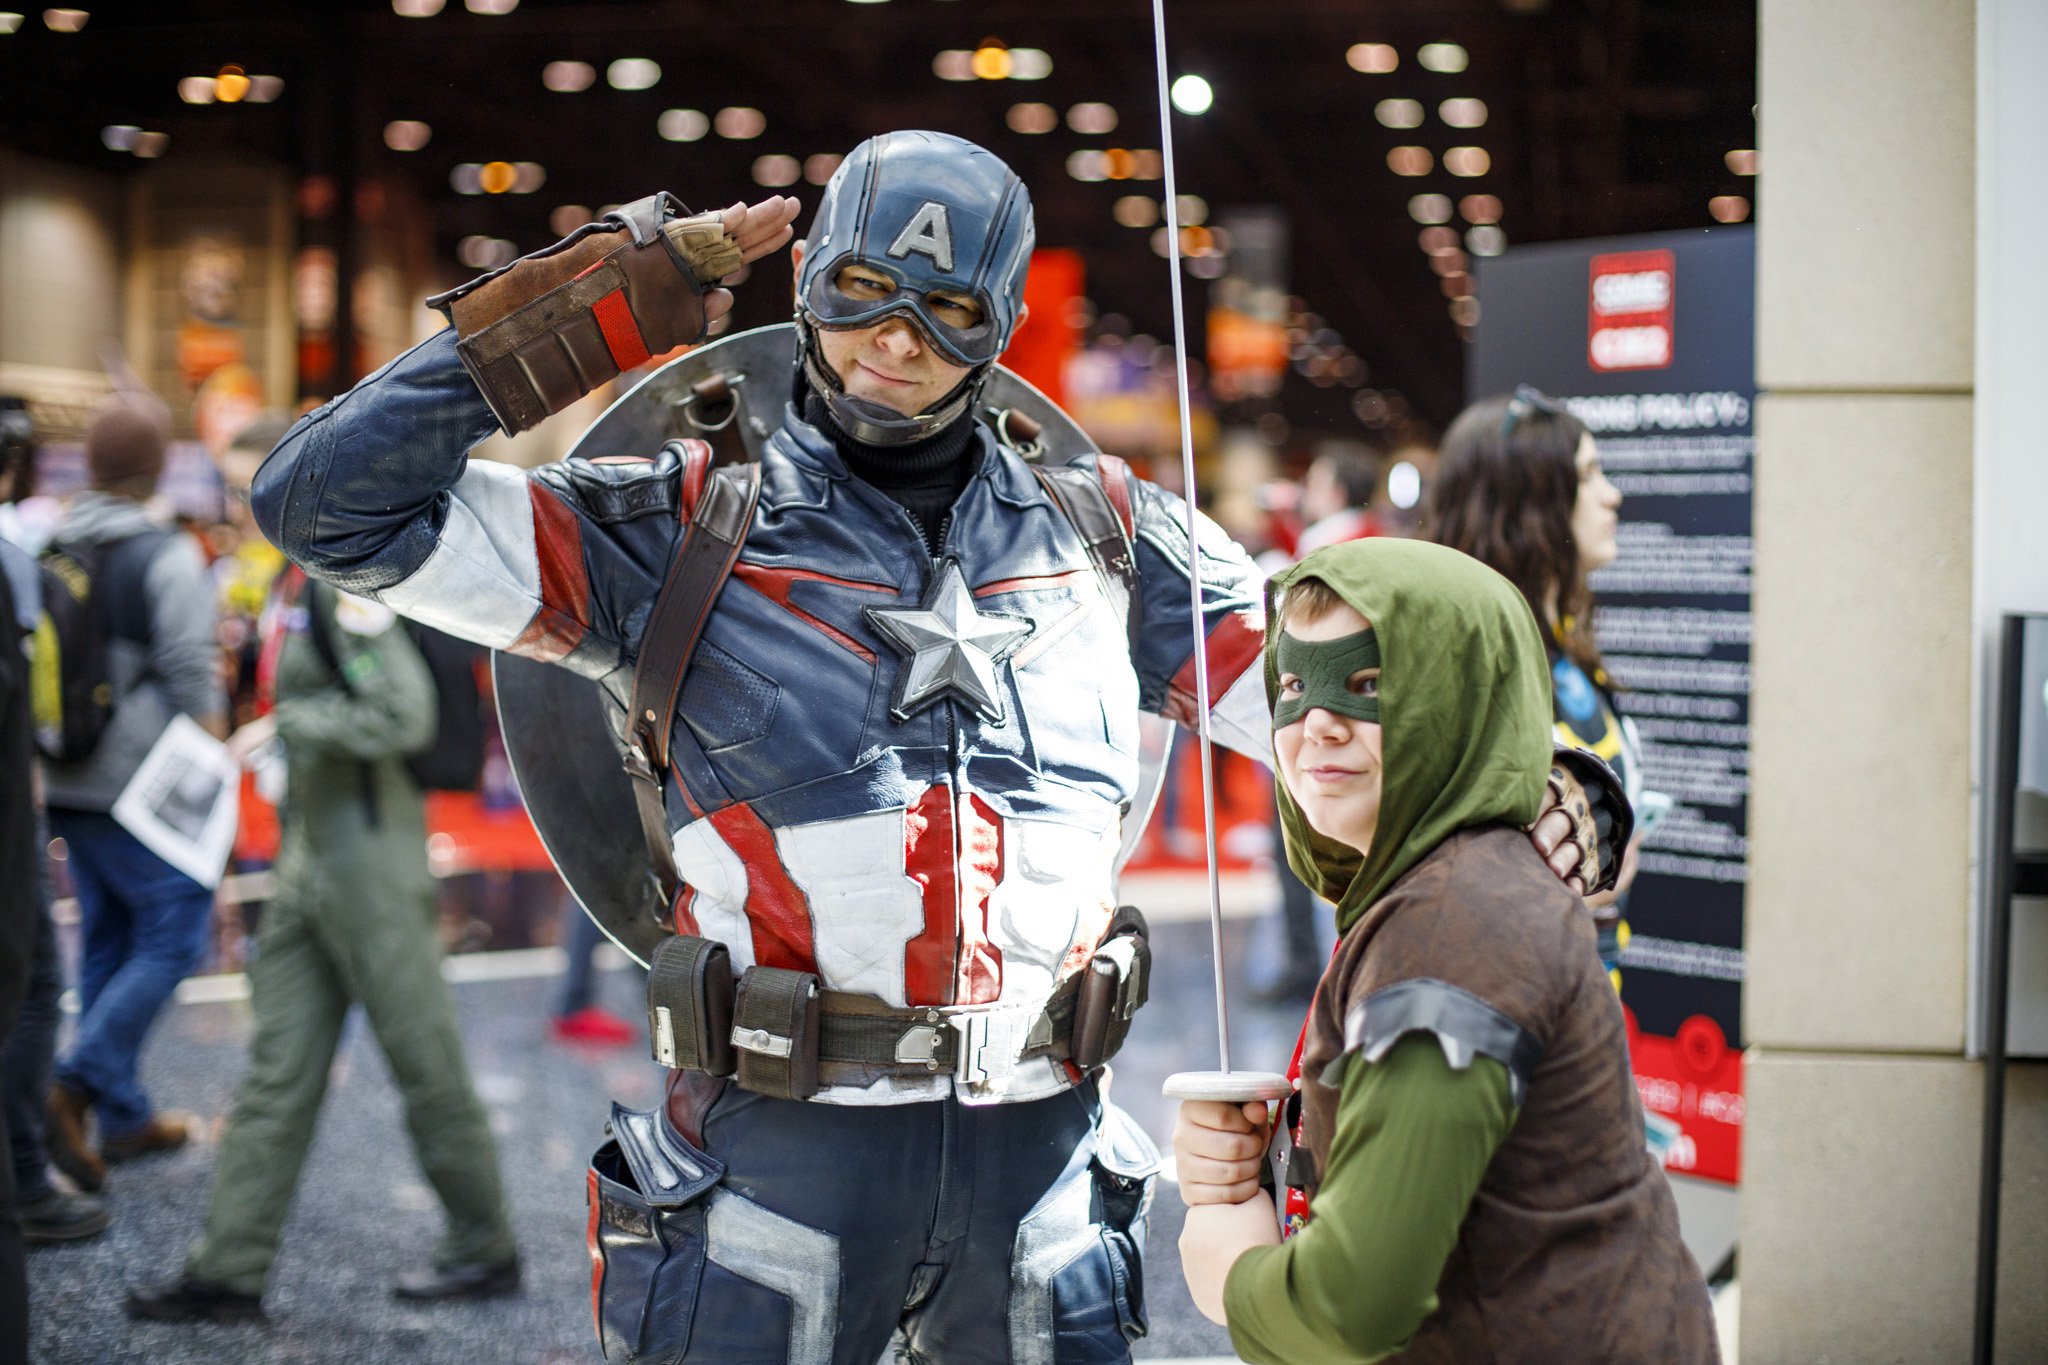 The best comic book conventions in Chicago